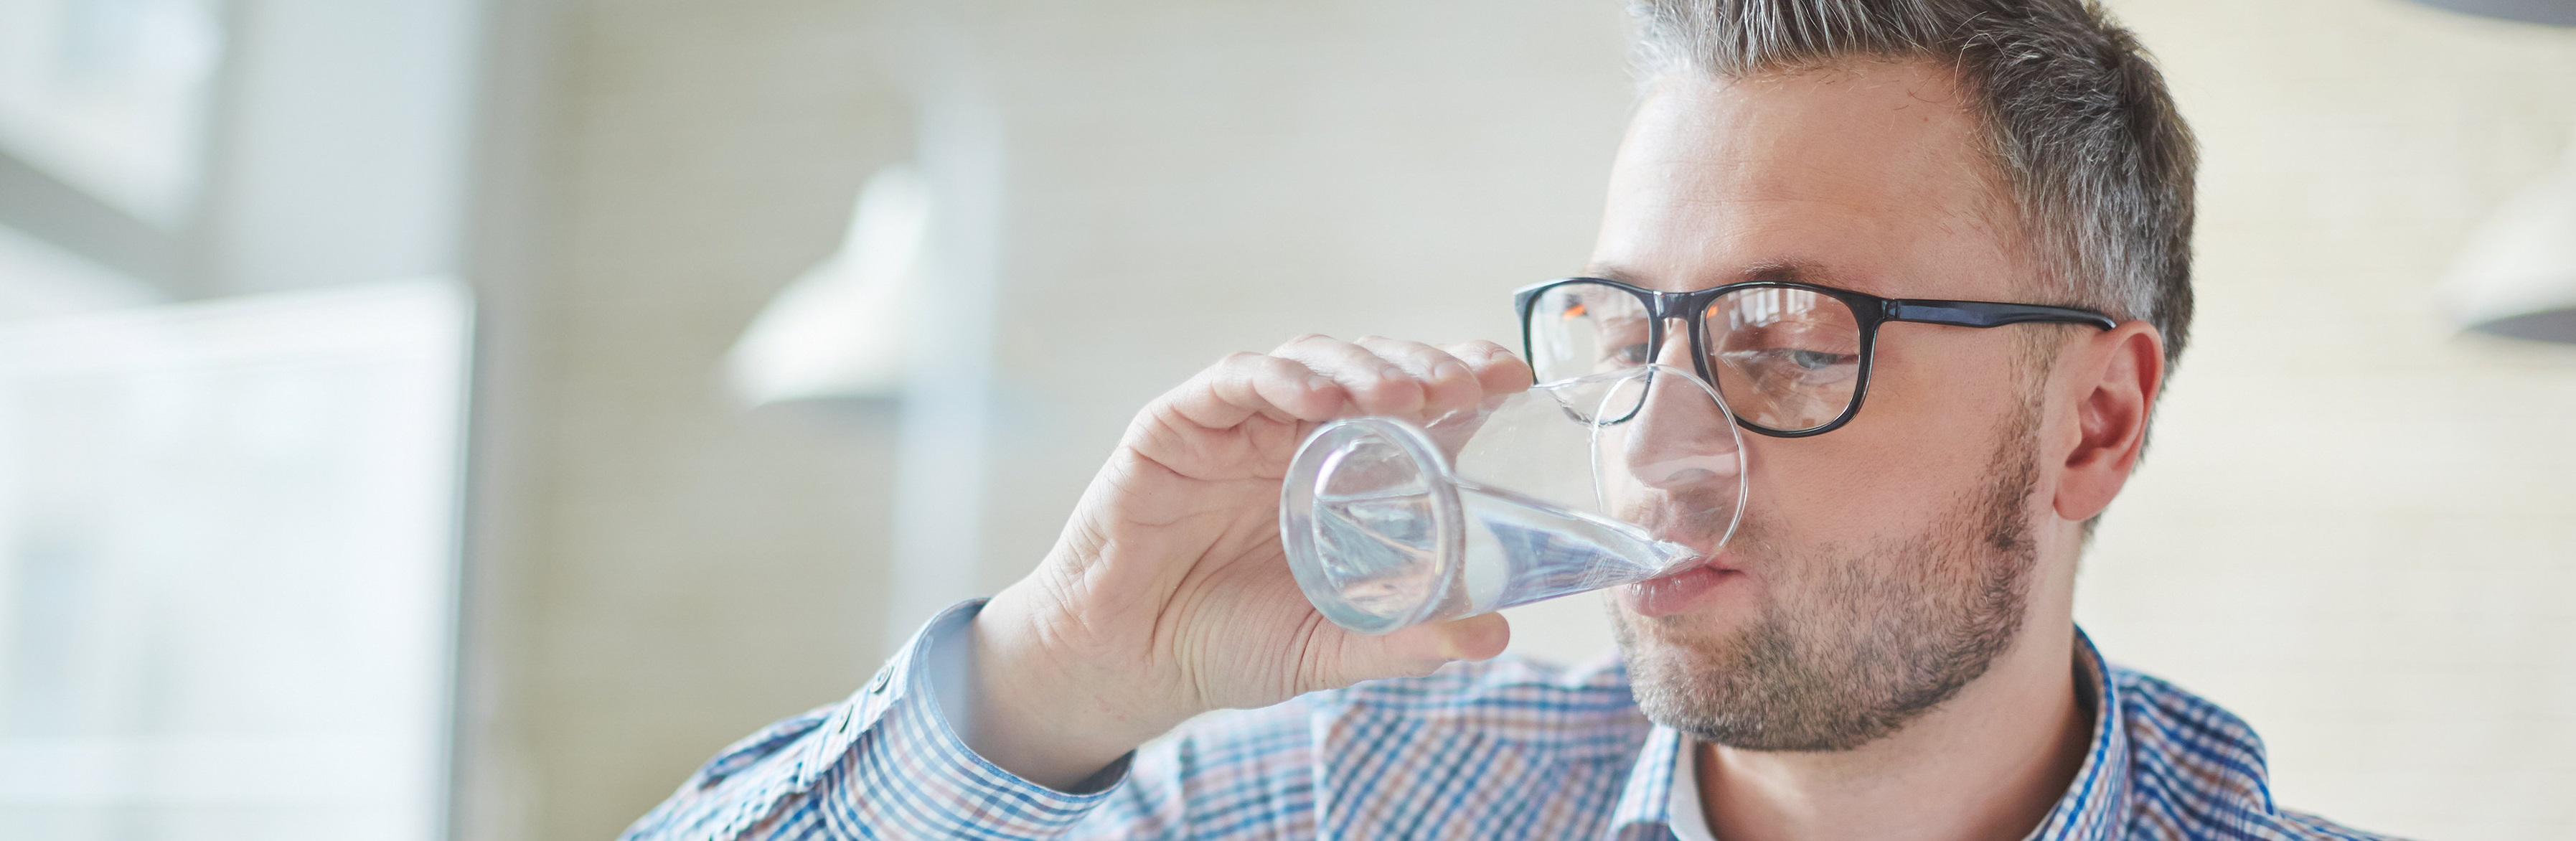 man drinking water hydration